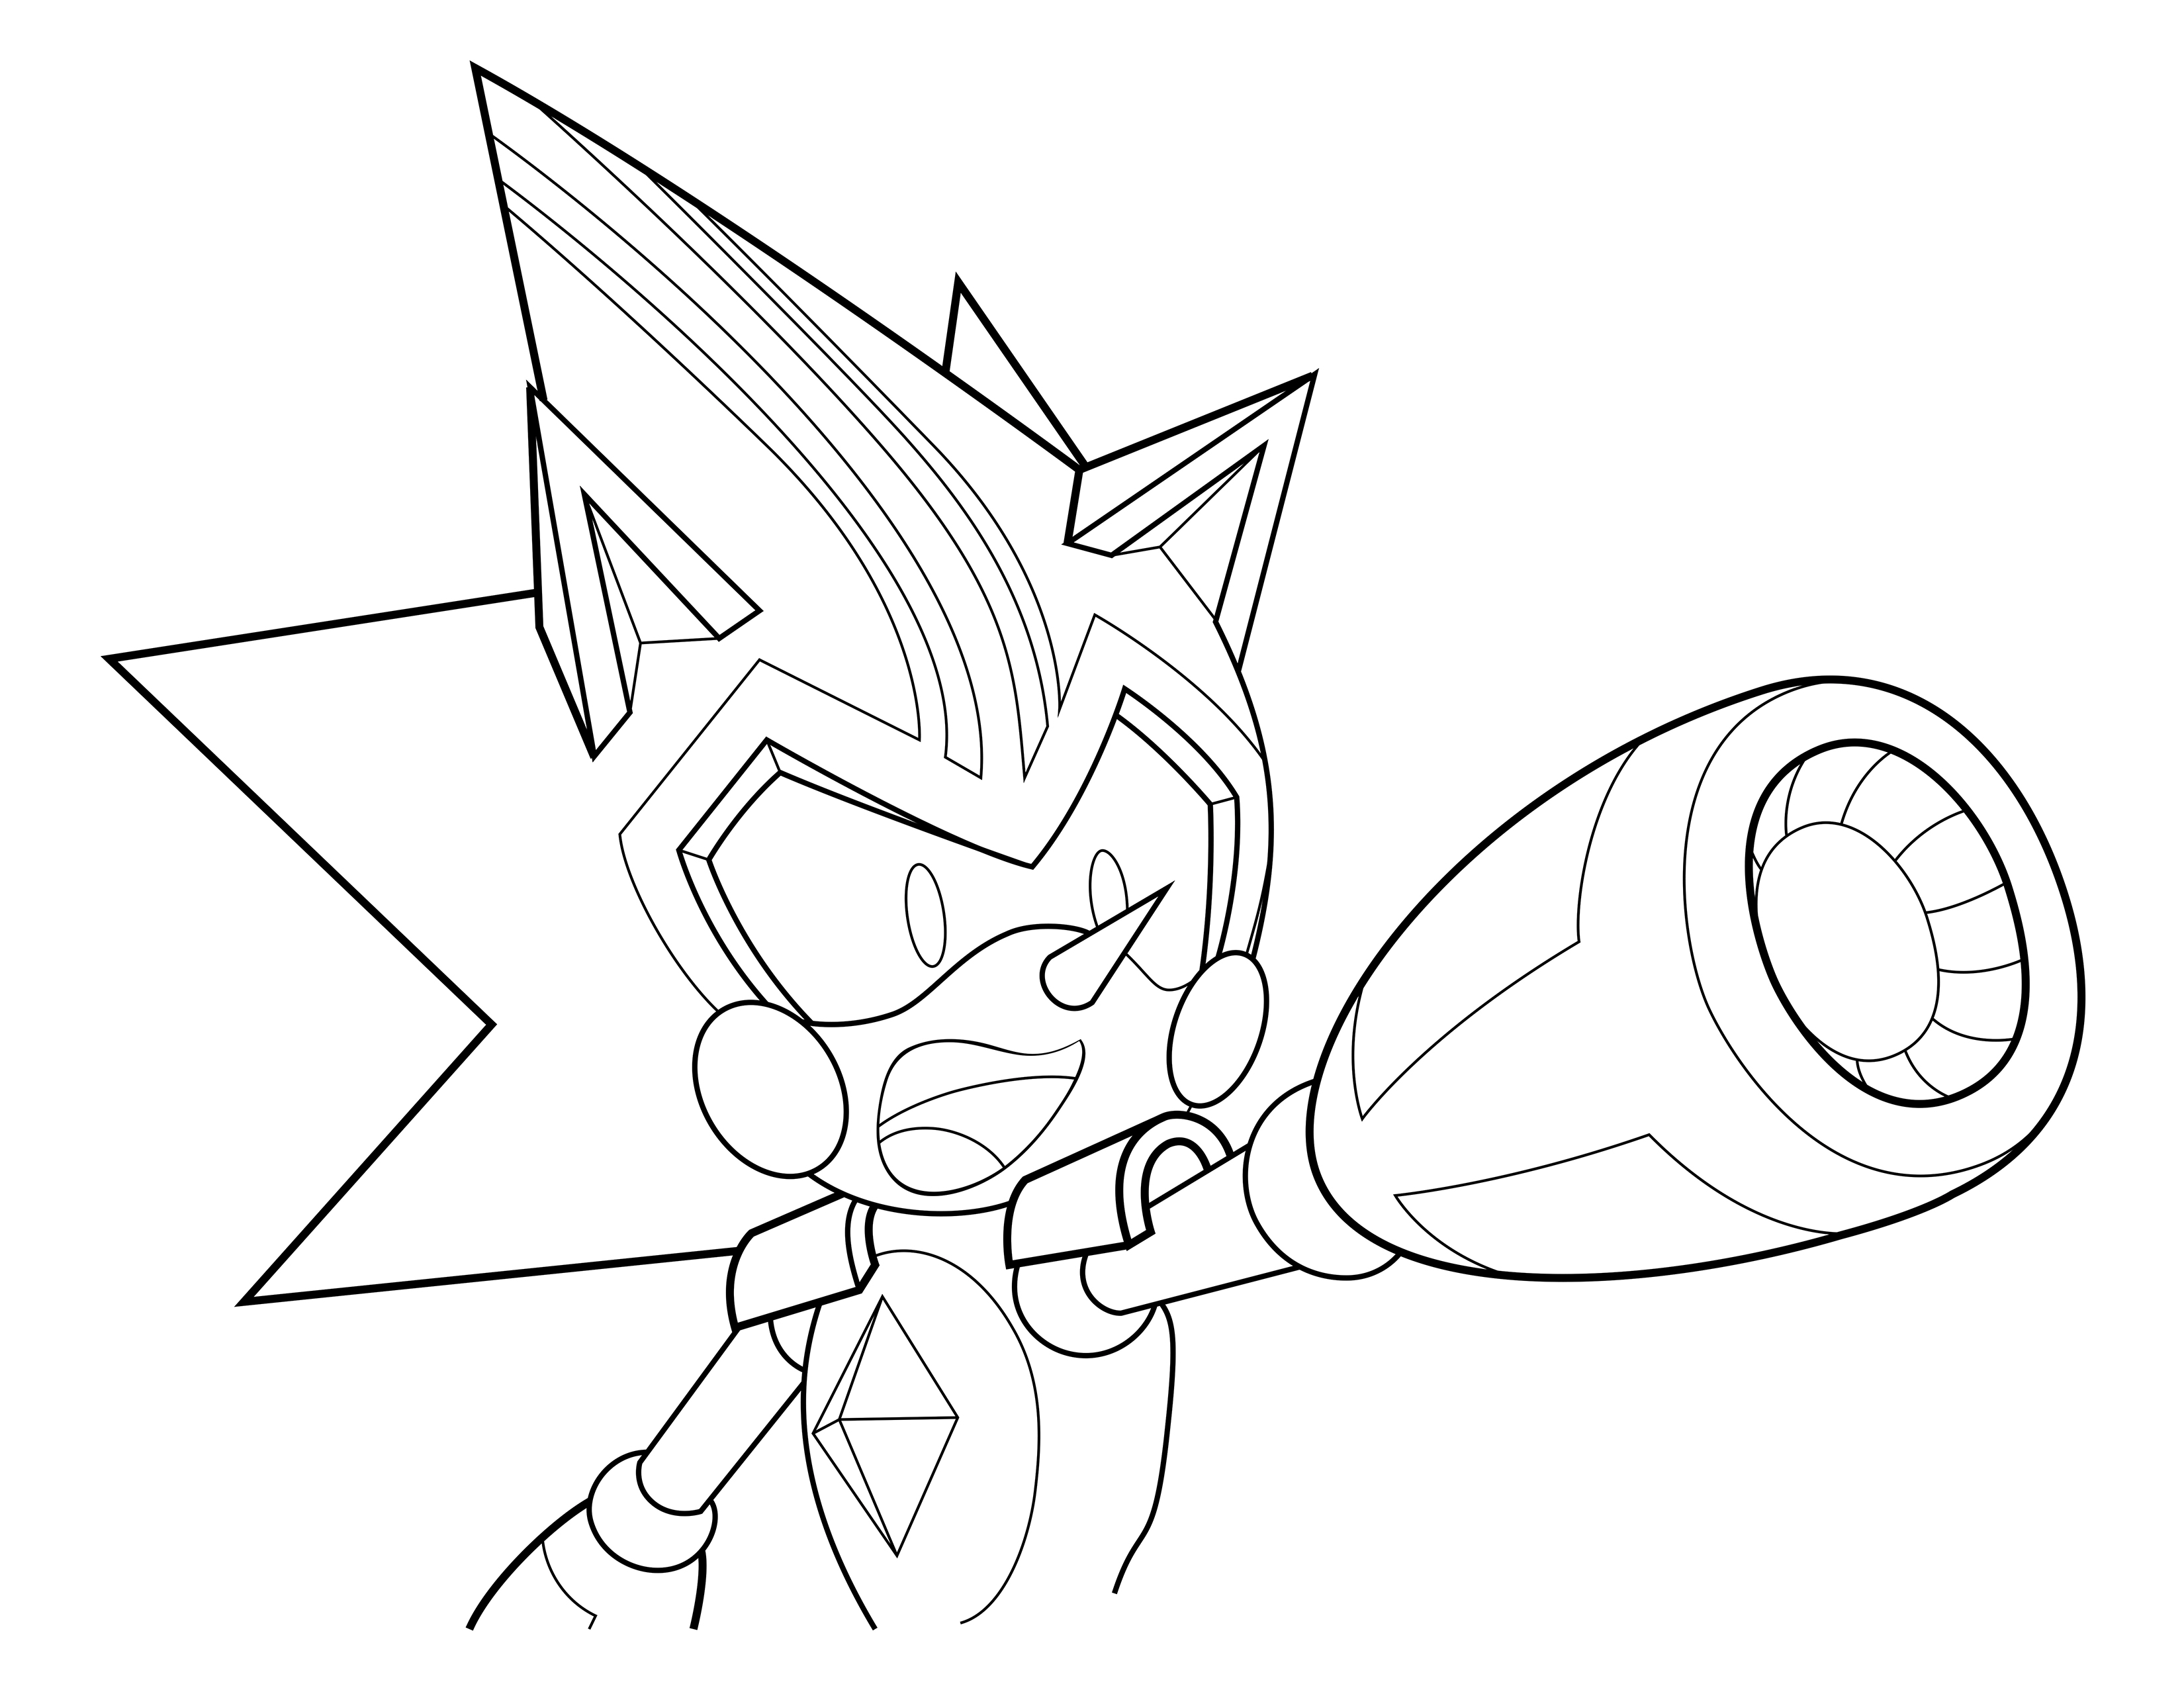 metal shadow sonic the hedgehog coloring pages